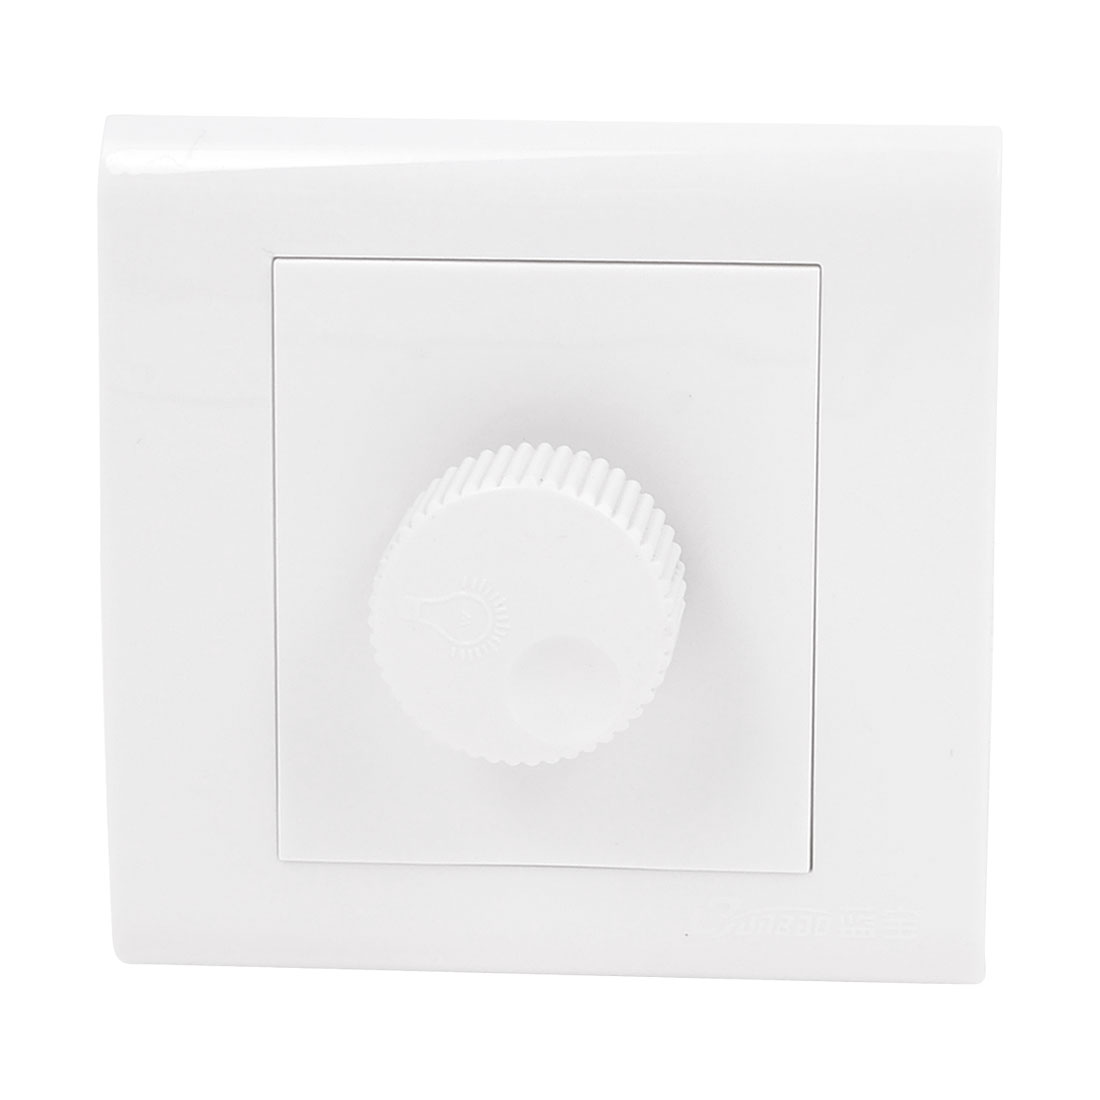 AC 250V 50-60HZ Lamp Light Control Switch Wall Plate White